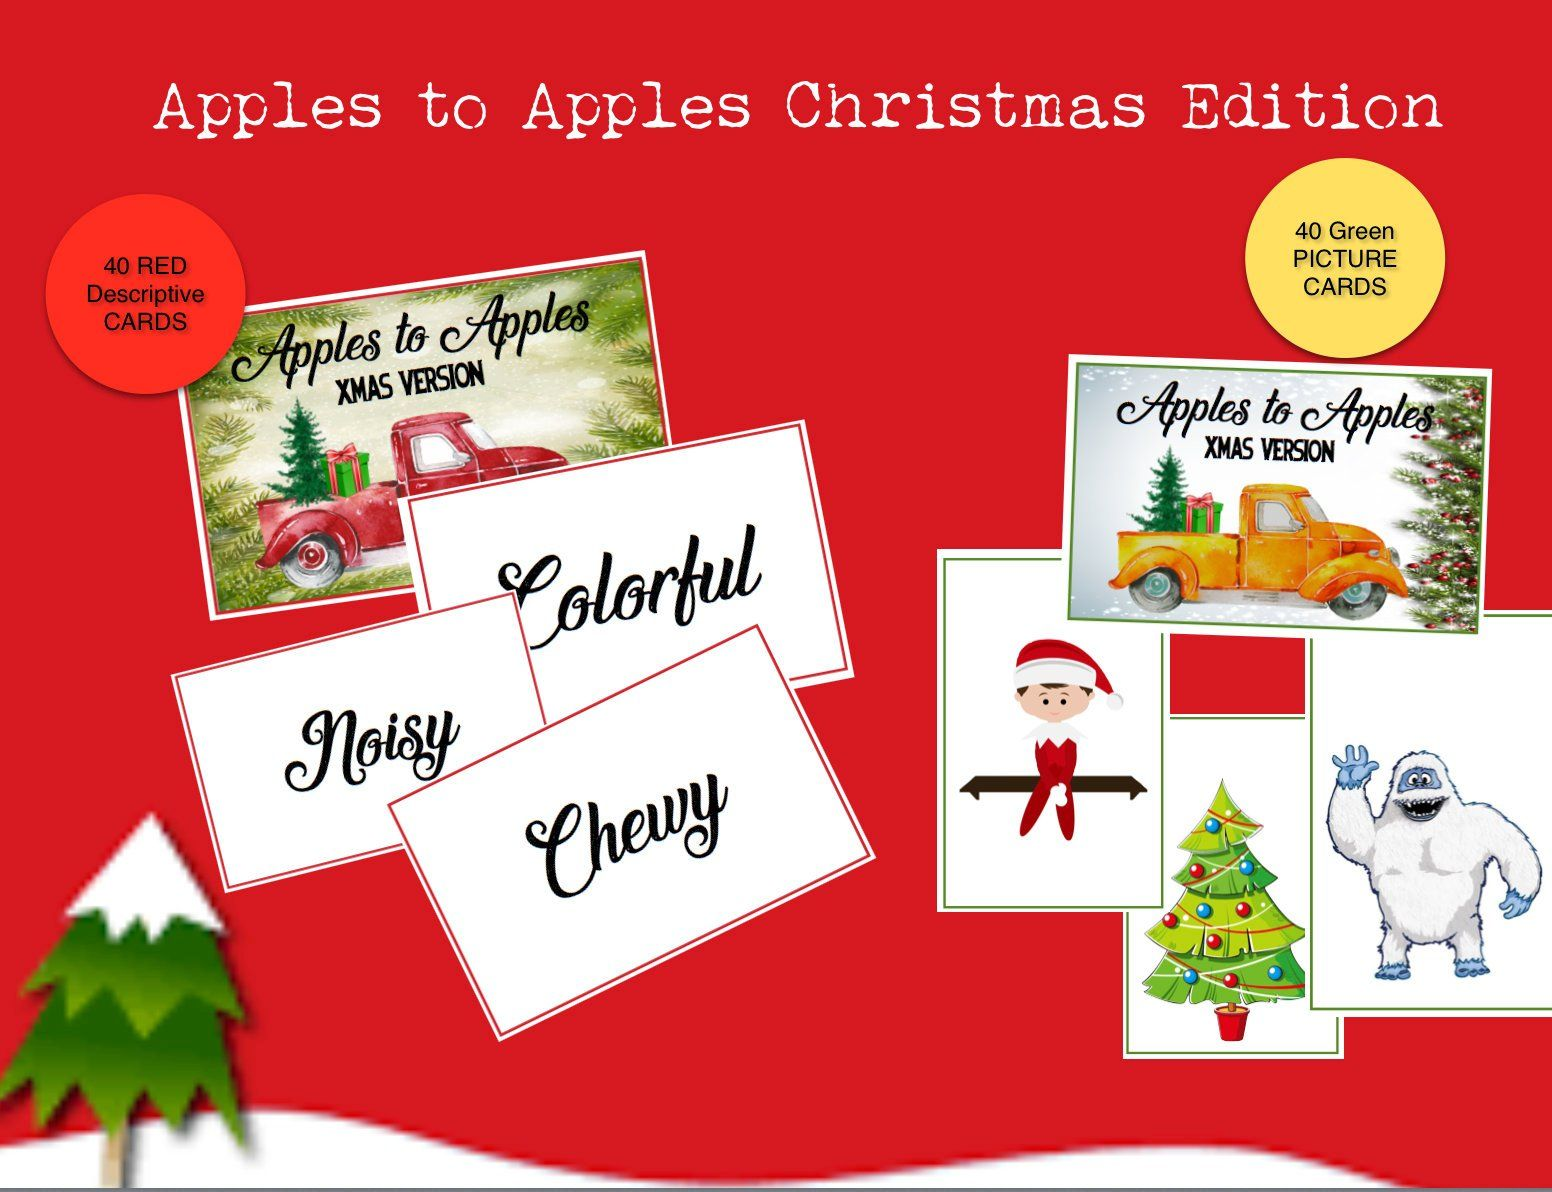 graphic regarding Apples to Apples Cards Printable referred to as Apples in the direction of Apples Xmas Model! Printable Playing cards towards perform